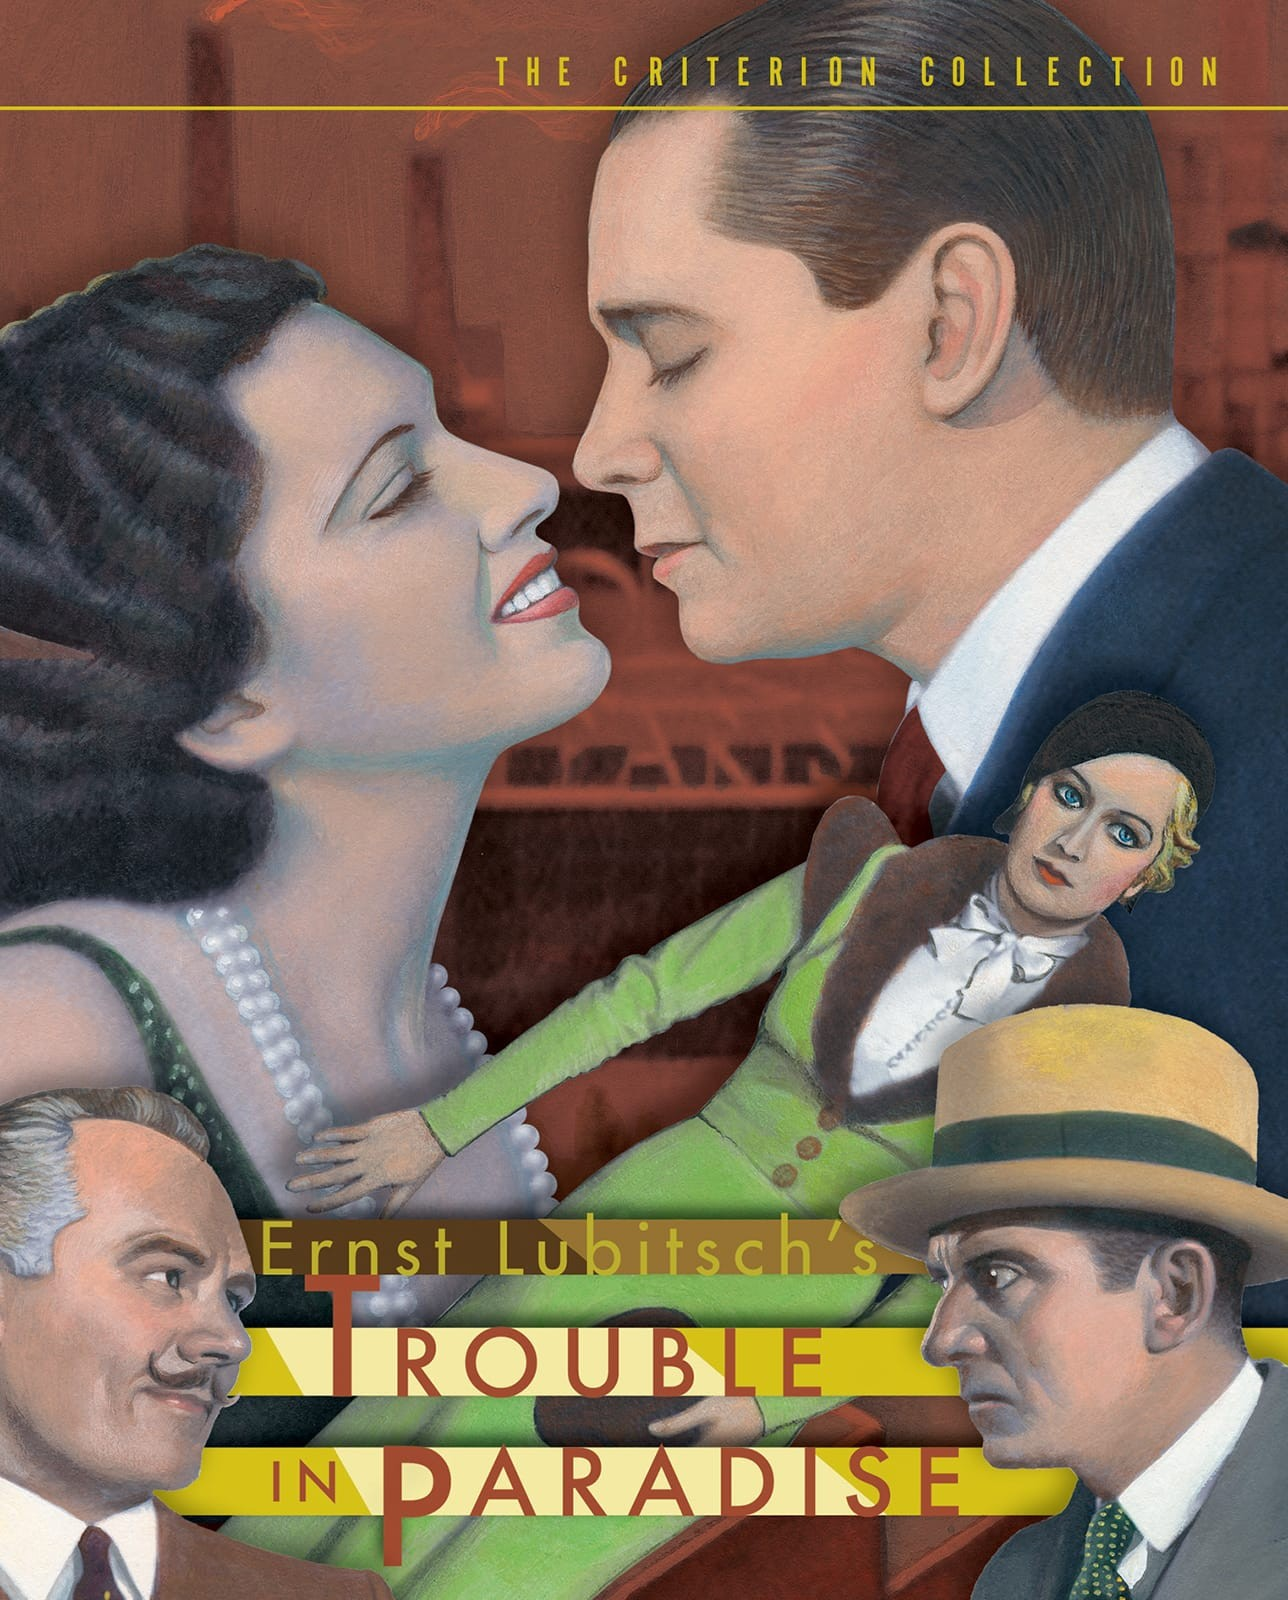 Trouble in Paradise (1932) | The Criterion Collection